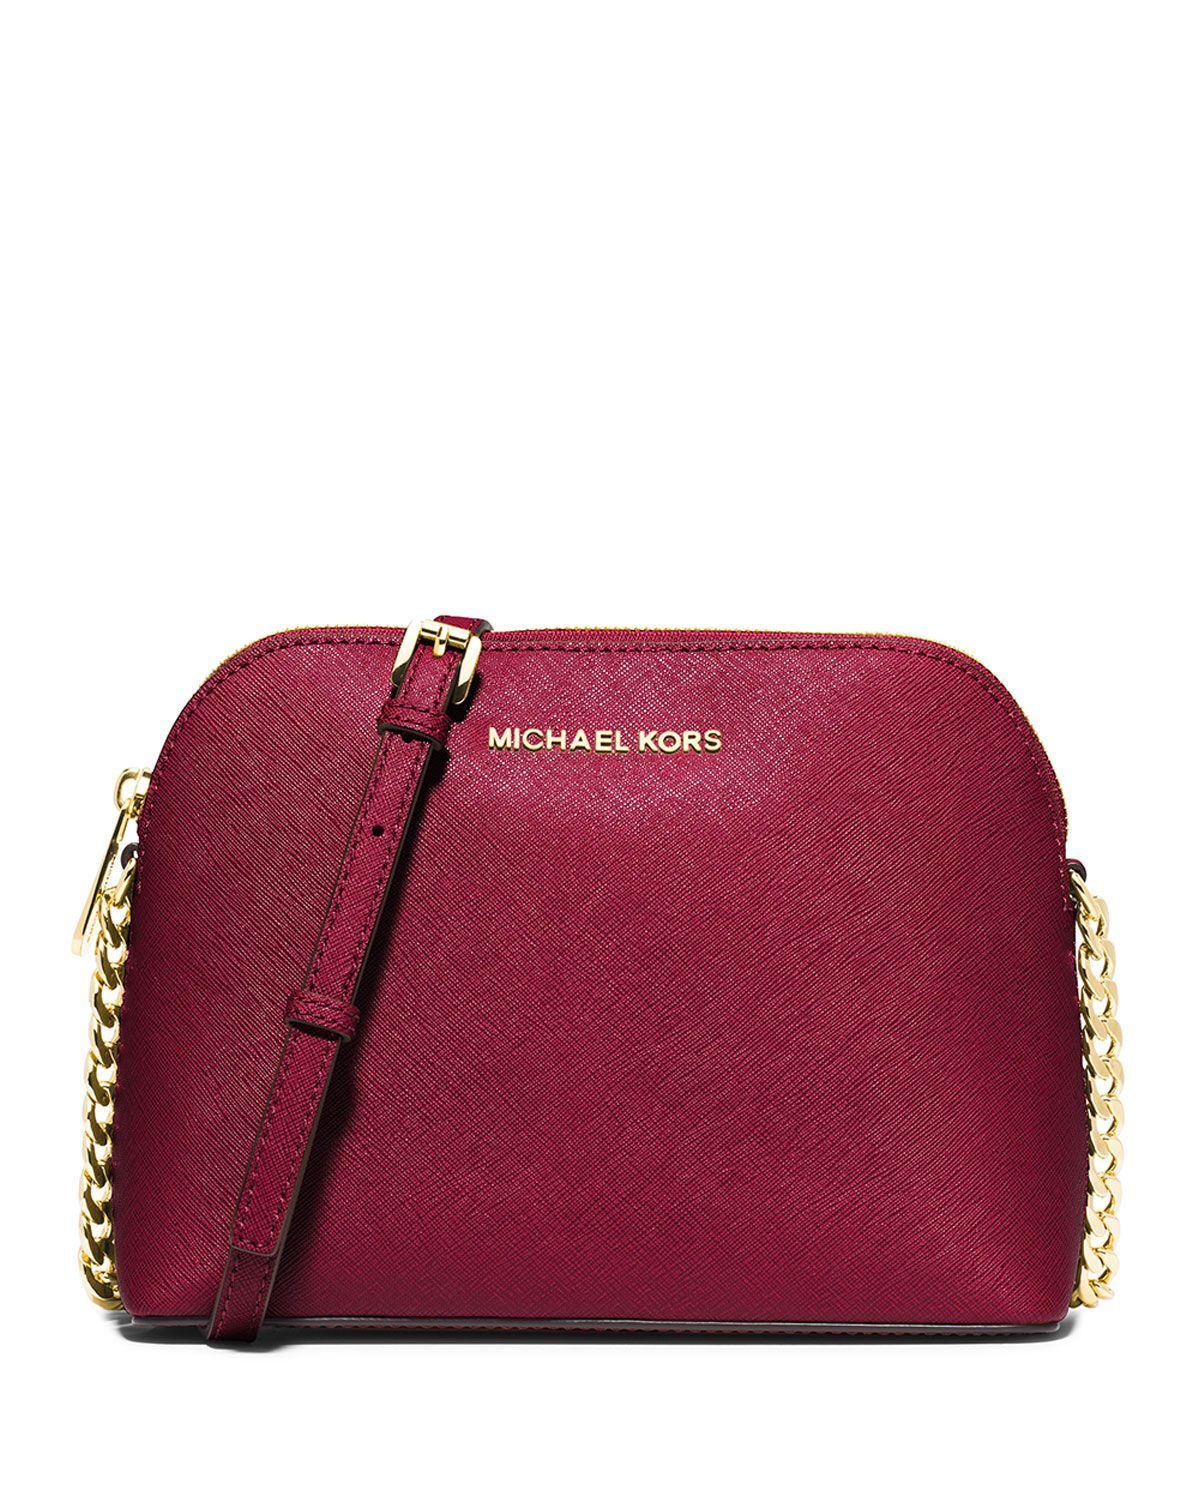 71cde326e3f9 MICHAEL Michael Kors Cindy Large Dome Crossbody Bag, Cherry | bags ...